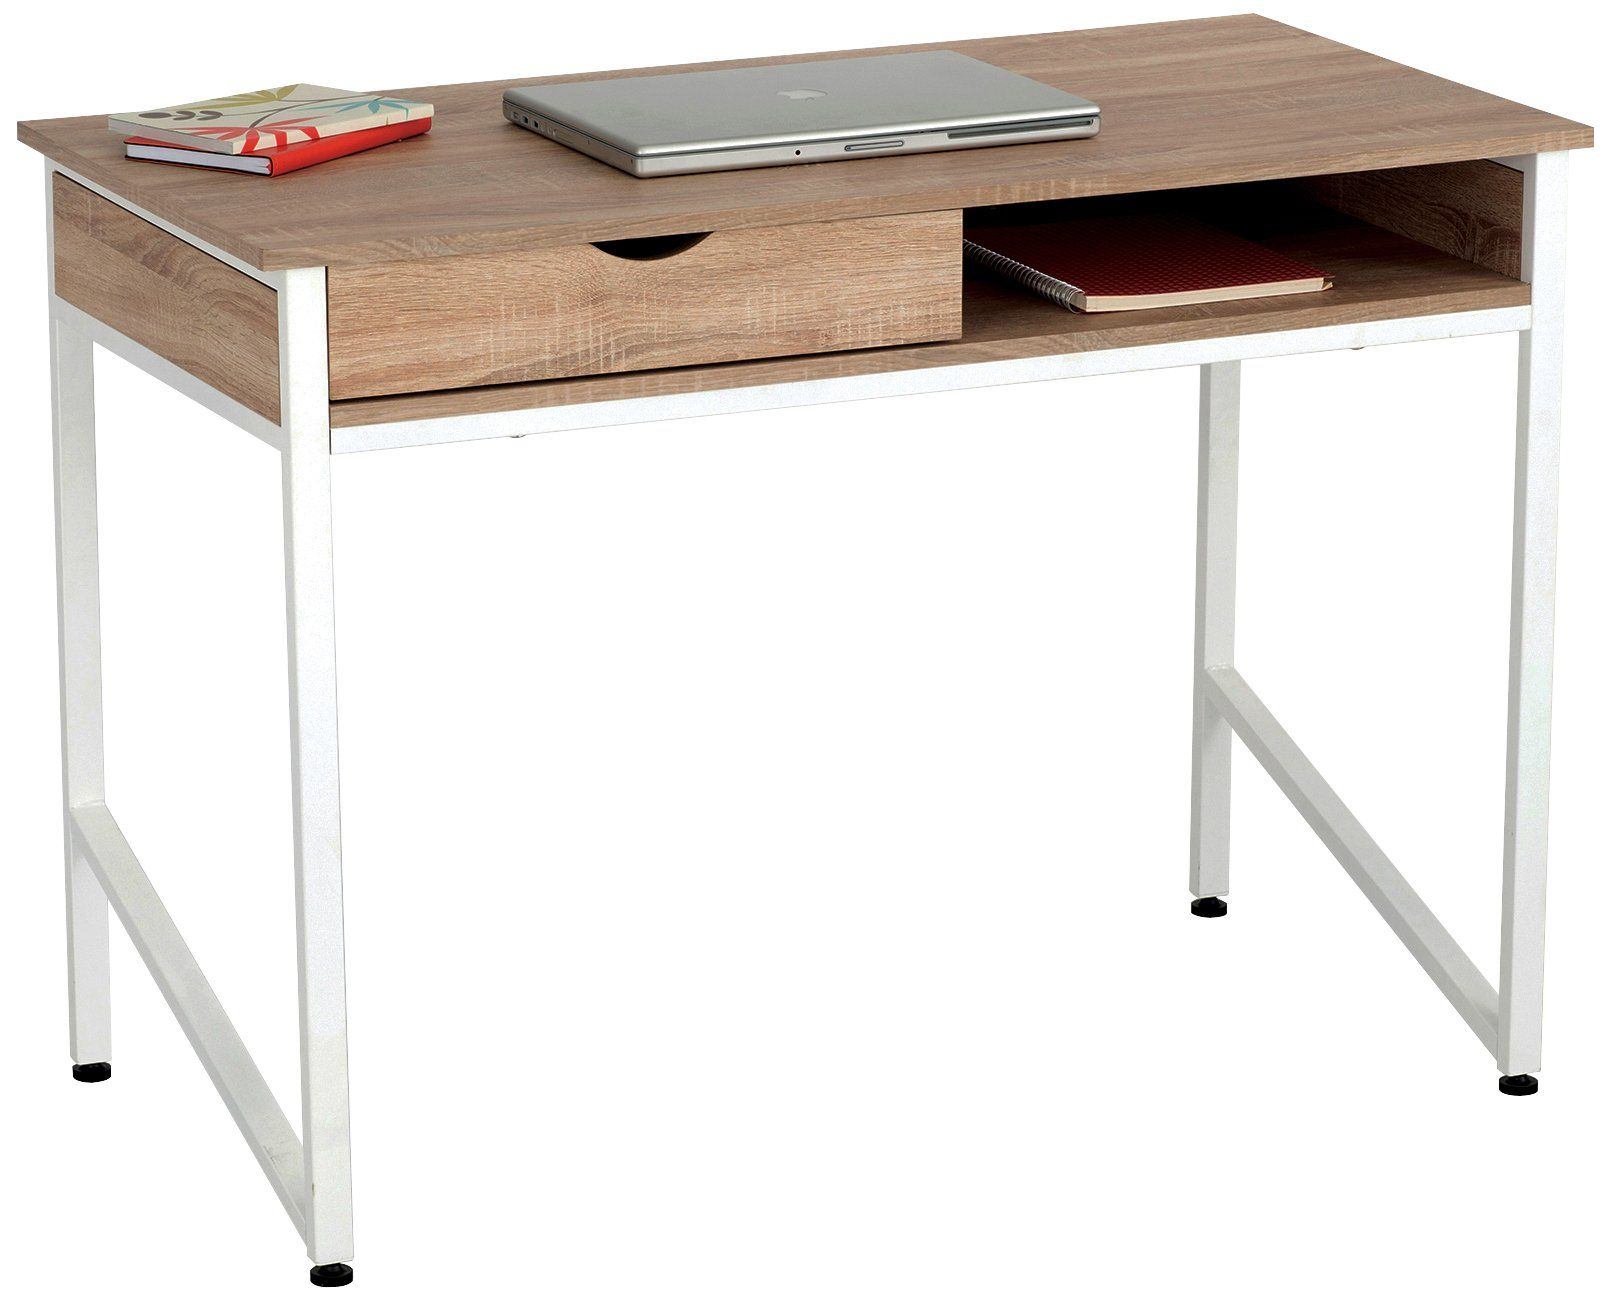 Contemporary style iversen rectangular writing desk with large